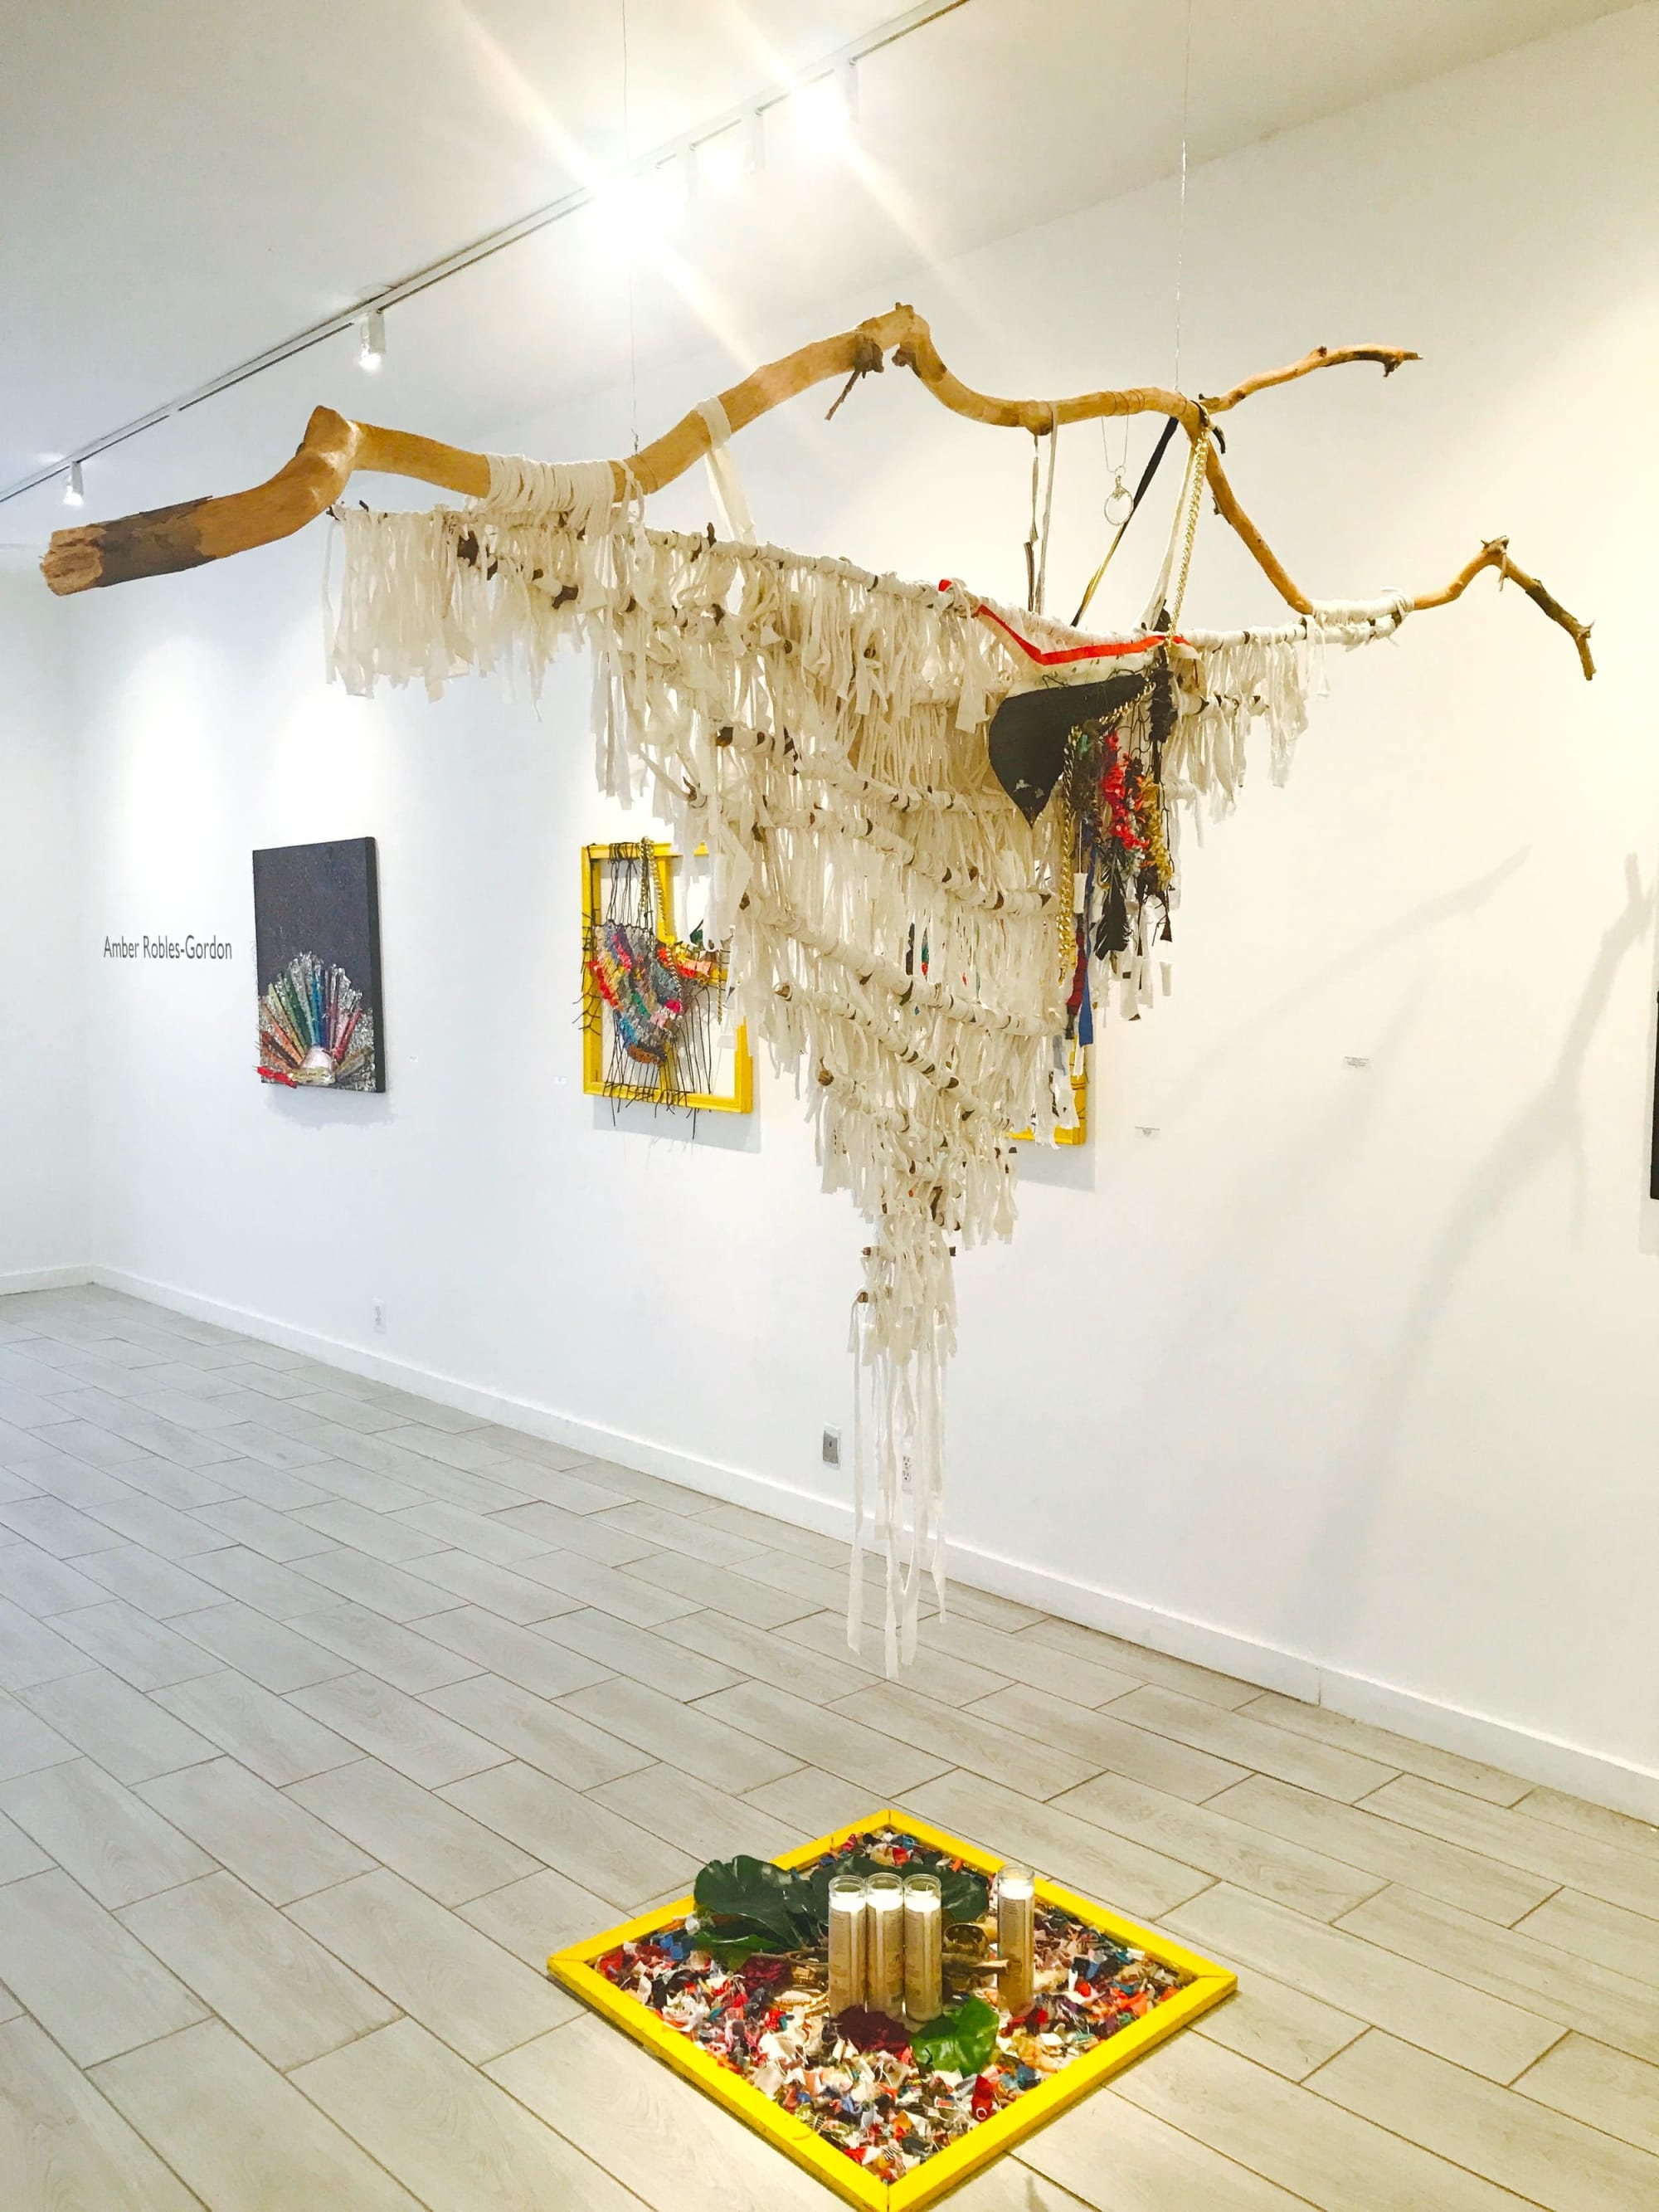 Wall Hangings by Amber Robles-Gordon seen at Honfleur Gallery, Washington - Let Me Tell You About the Baes and the Bees Series,